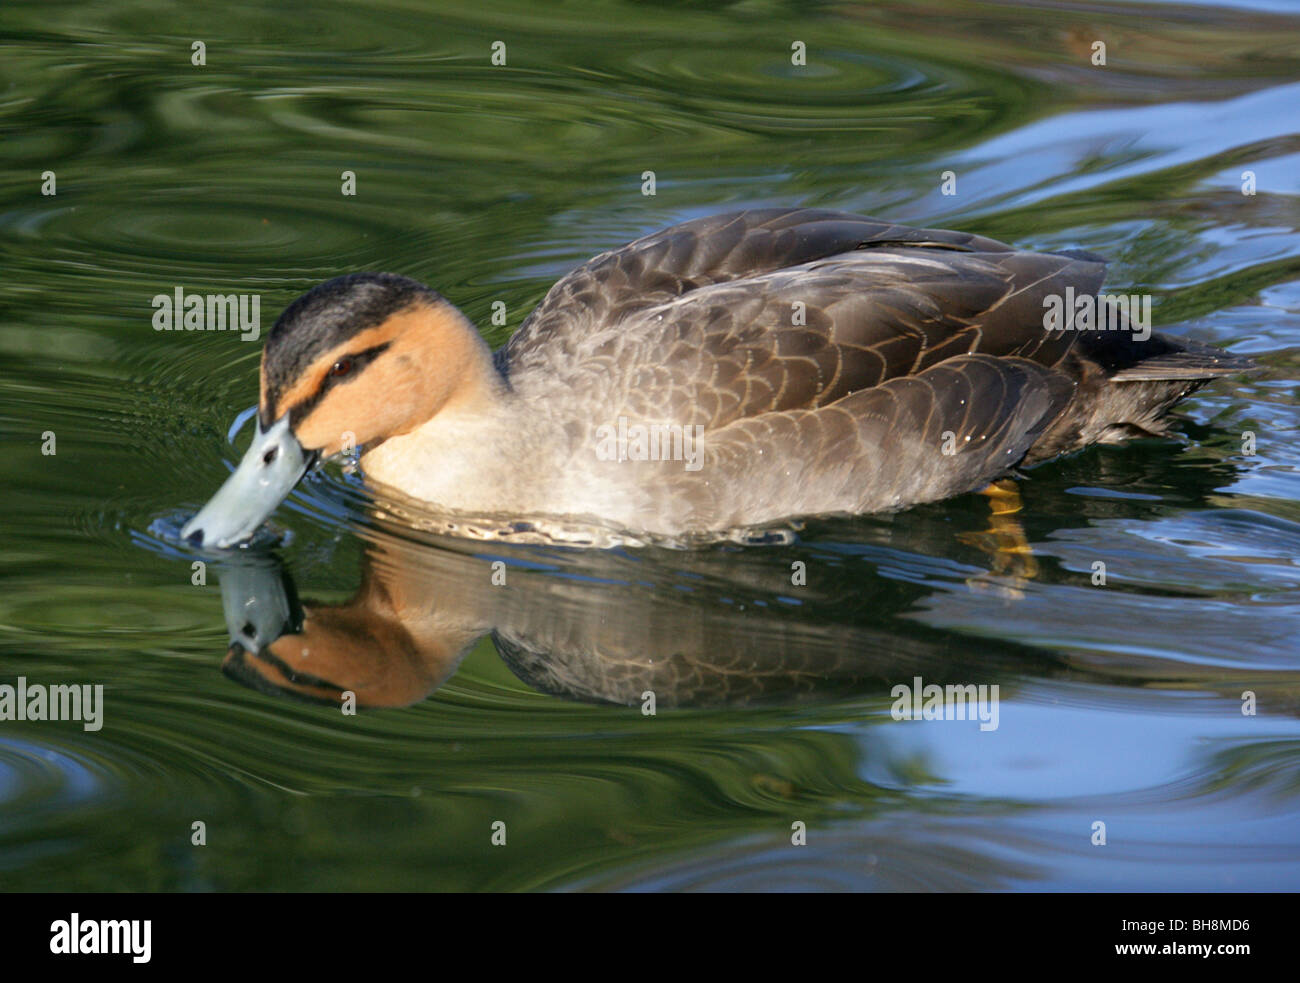 Philippine Duck, Anas luzonica, Anatidae. Rare Duck from the Philippines, Asia. On the IUCN Red List of Threatened - Stock Image